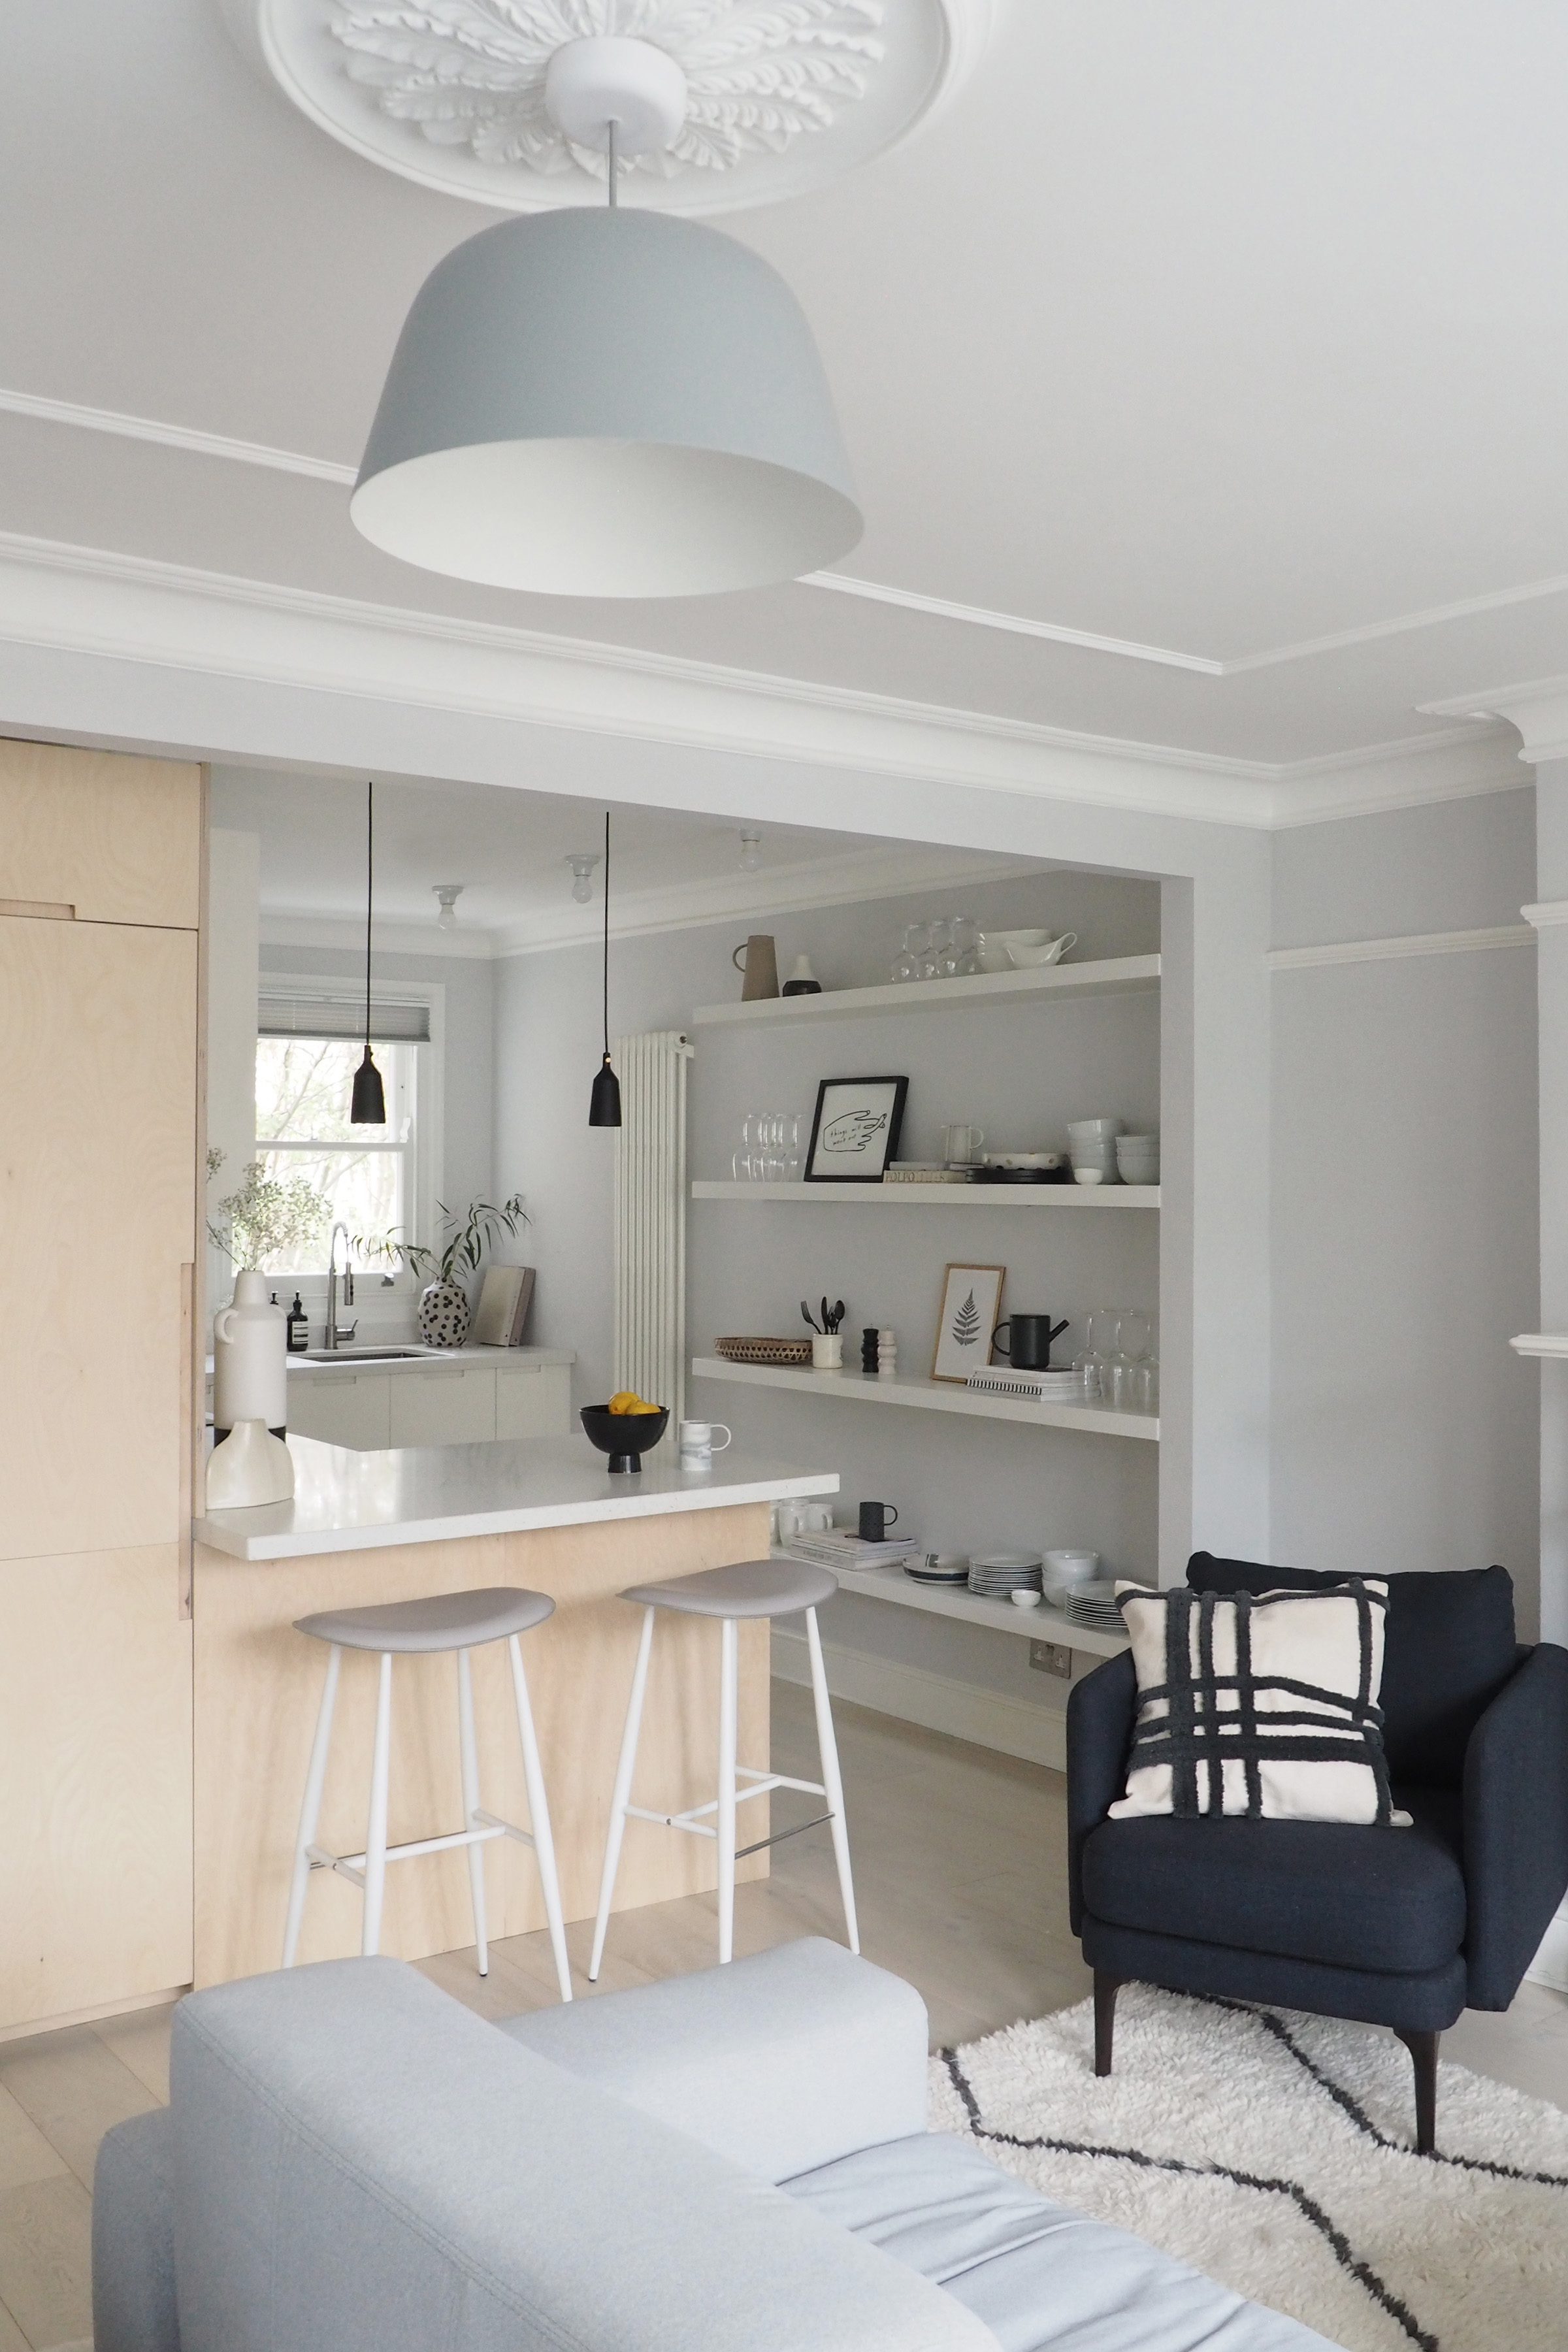 New Interior Project A Light Filled Minimalist Kitchen And